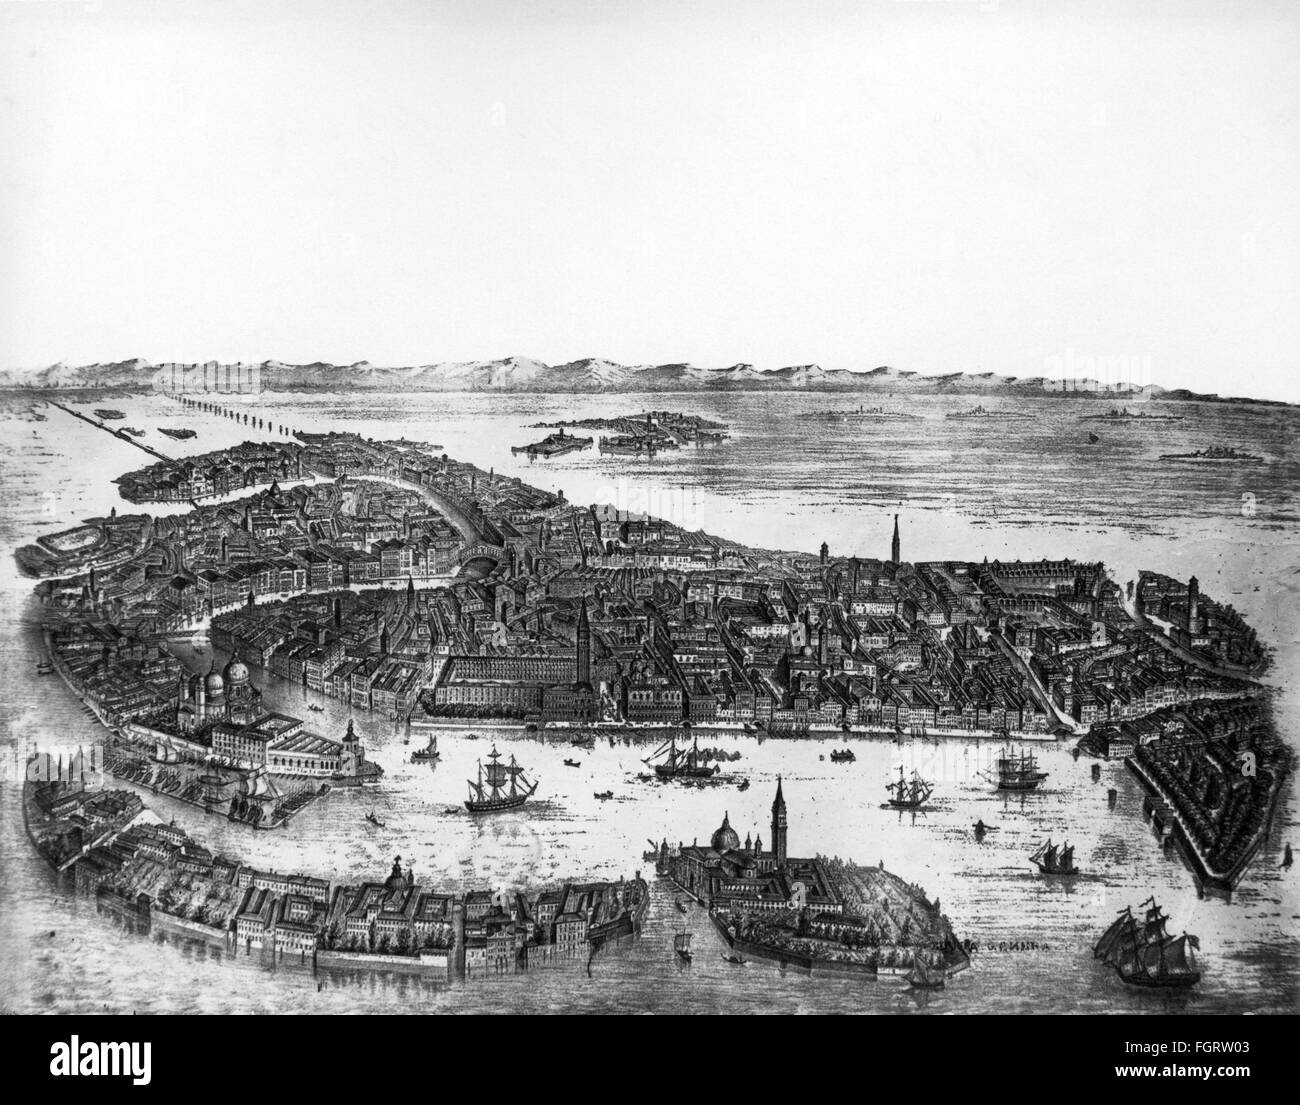 geography / travel, Italy, Venice, view, engraving, 19th century, Venezia, Canal Grande, isle, islands, lagoon, - Stock Image